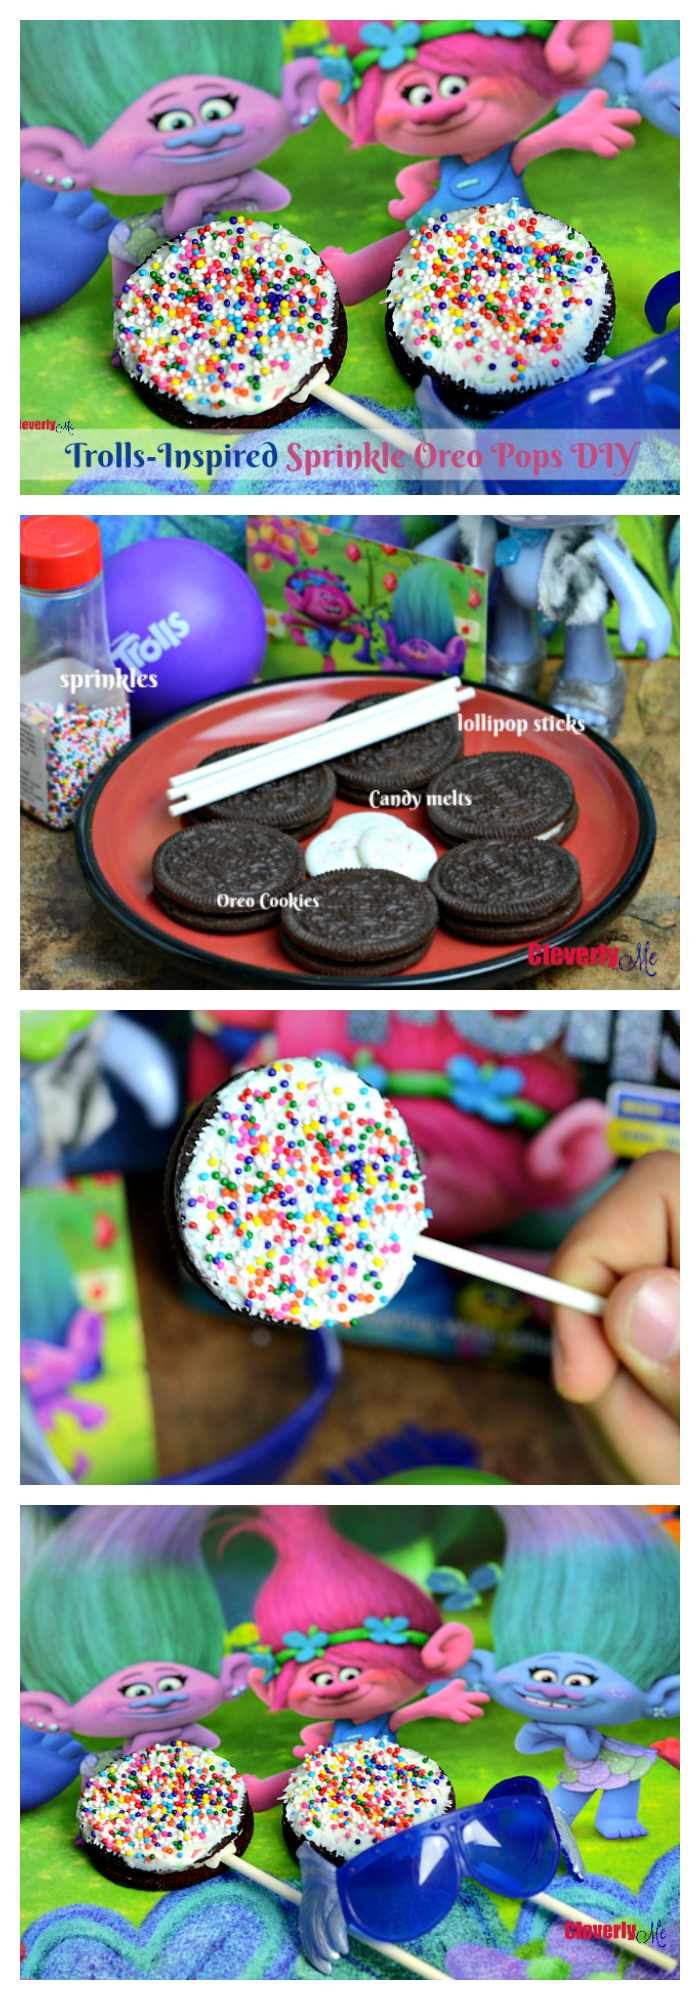 Enjoy these Trolls-Inspired Sprinkle Oreo Pops DIY perfect for Valentine's day, kids' birthday party or any day of the year. More at CleverlyMe.com